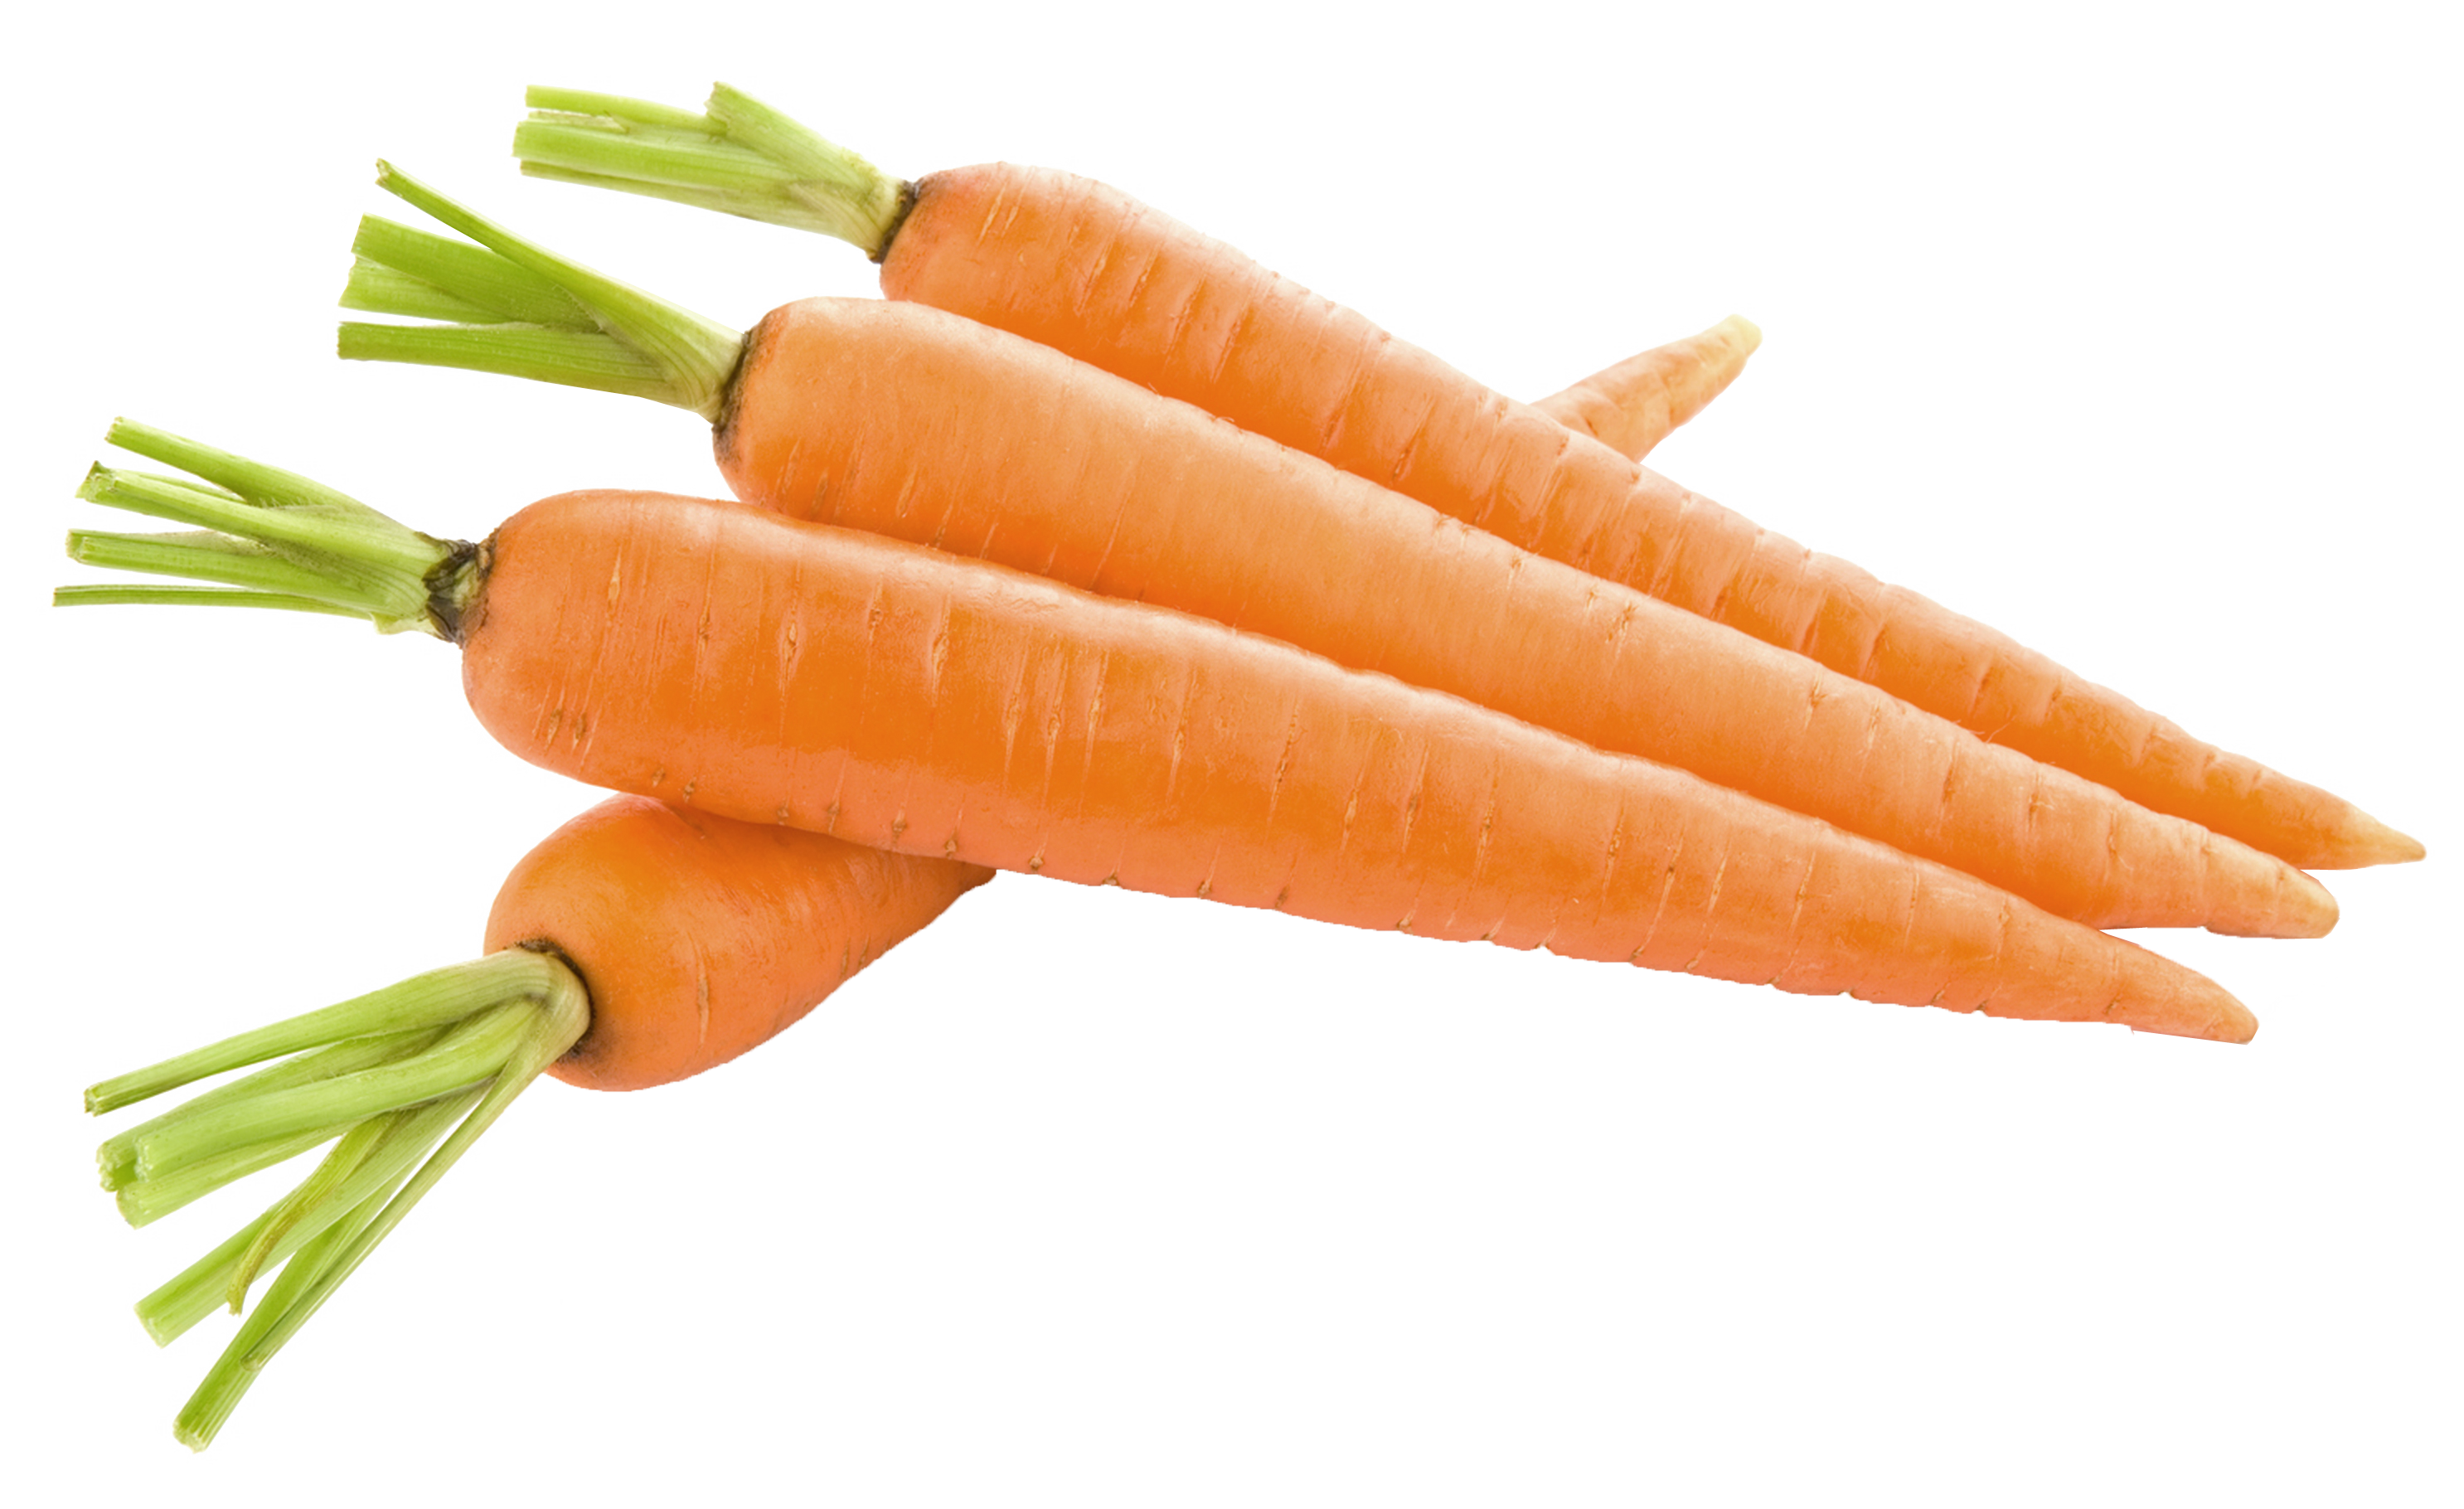 Carrots png picture gallery. Clipart vegetables carrot stick